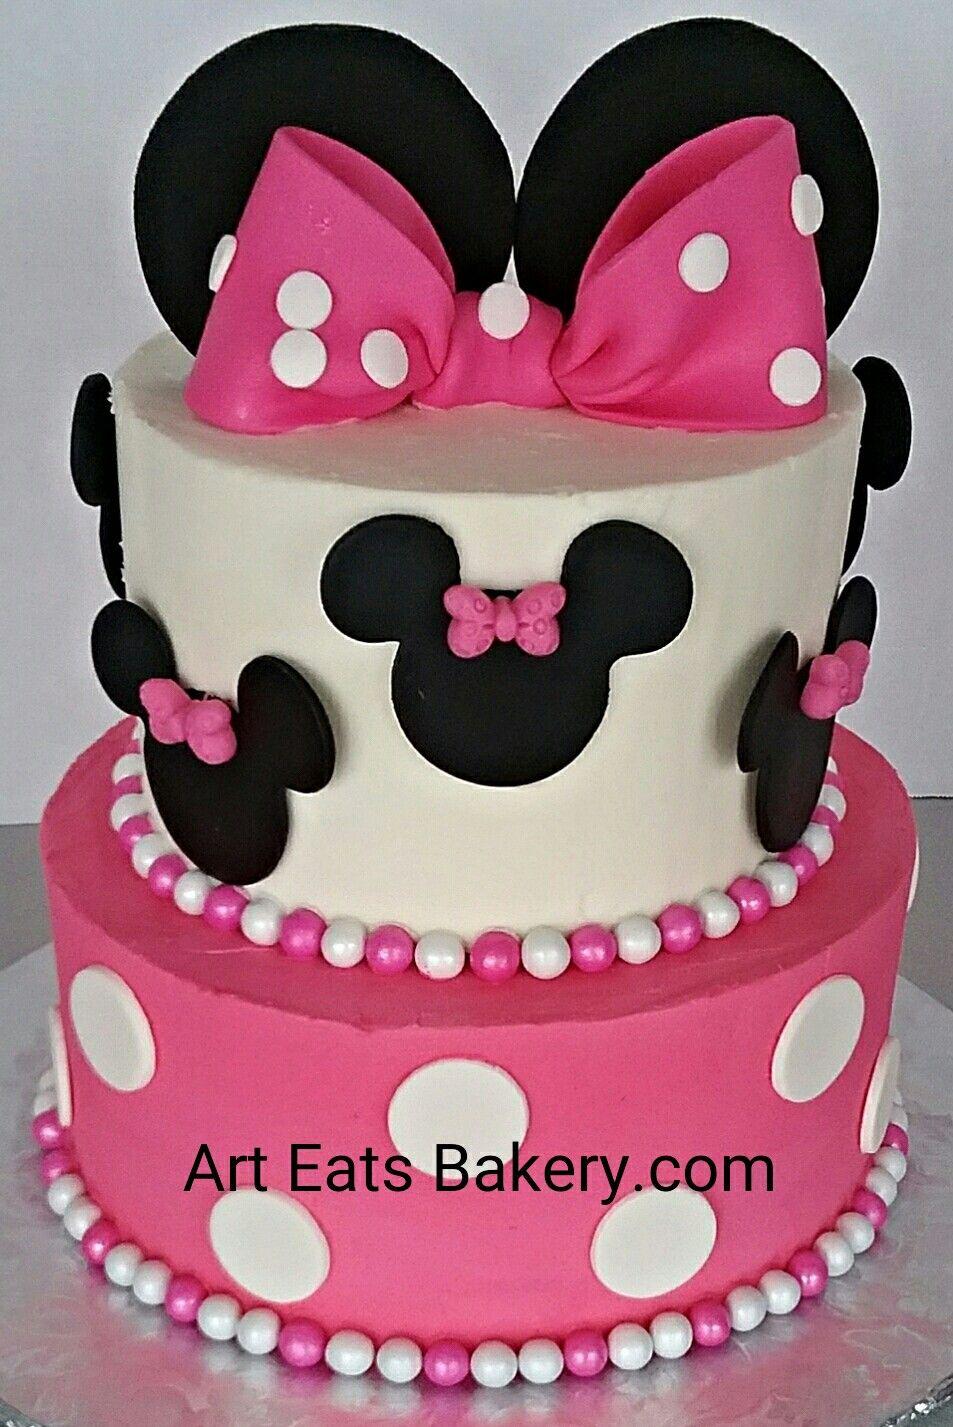 Two tier pink and white buttercream Minnie Mouse birthday cake with fondant ears and polka dot Bows       http://www.arteatsbakery.com